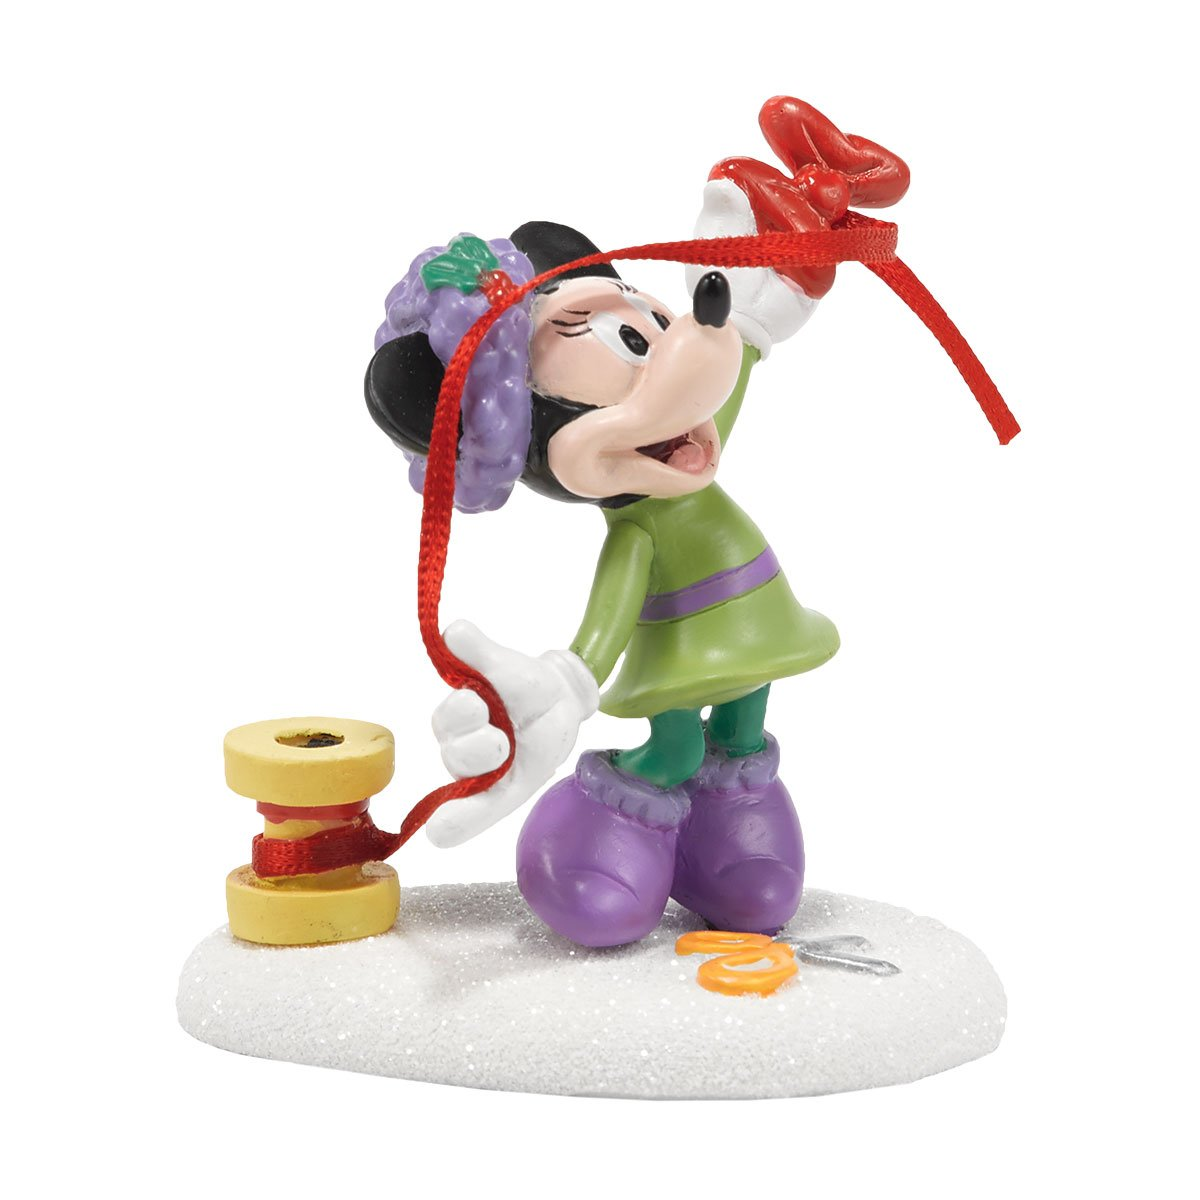 Department 56 Disney Village Minnie's Finishing Touch Accessory, 2.5 inch